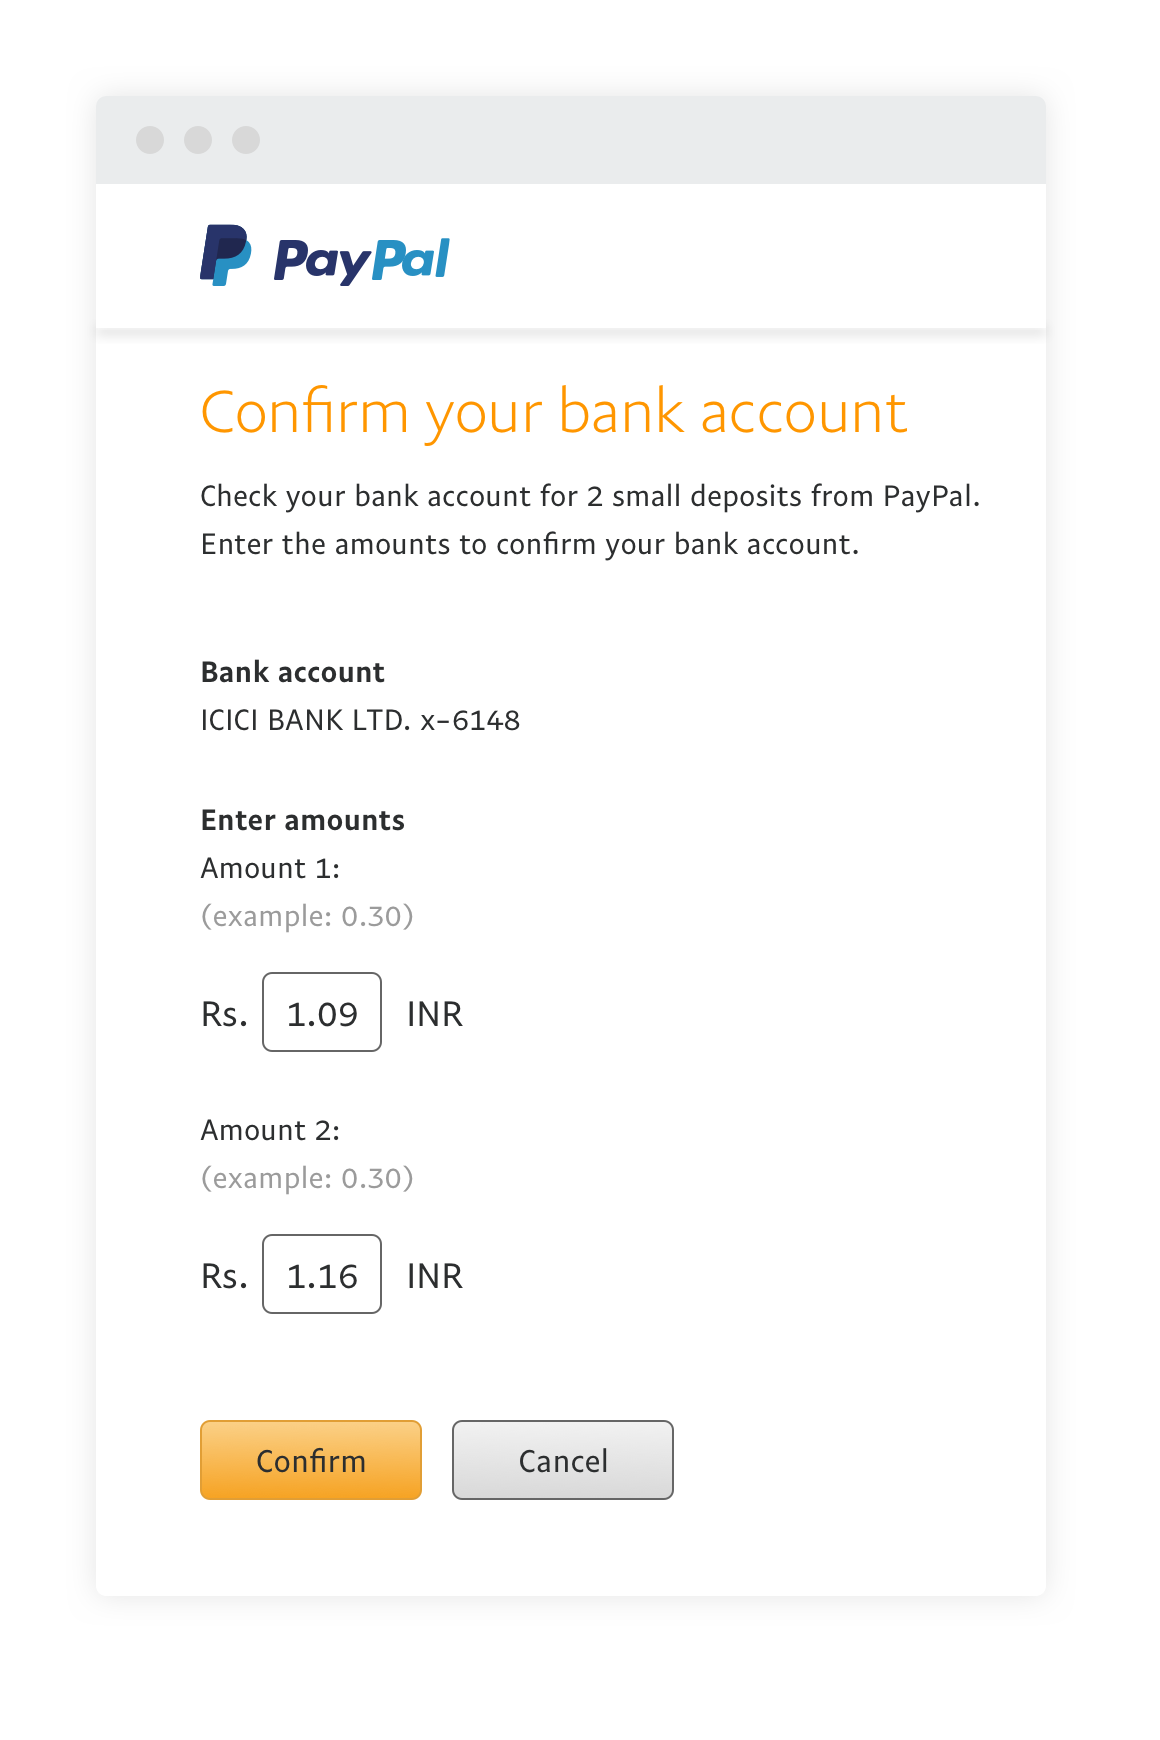 PayPal Guide] How to Link a Bank Account - PayPal India